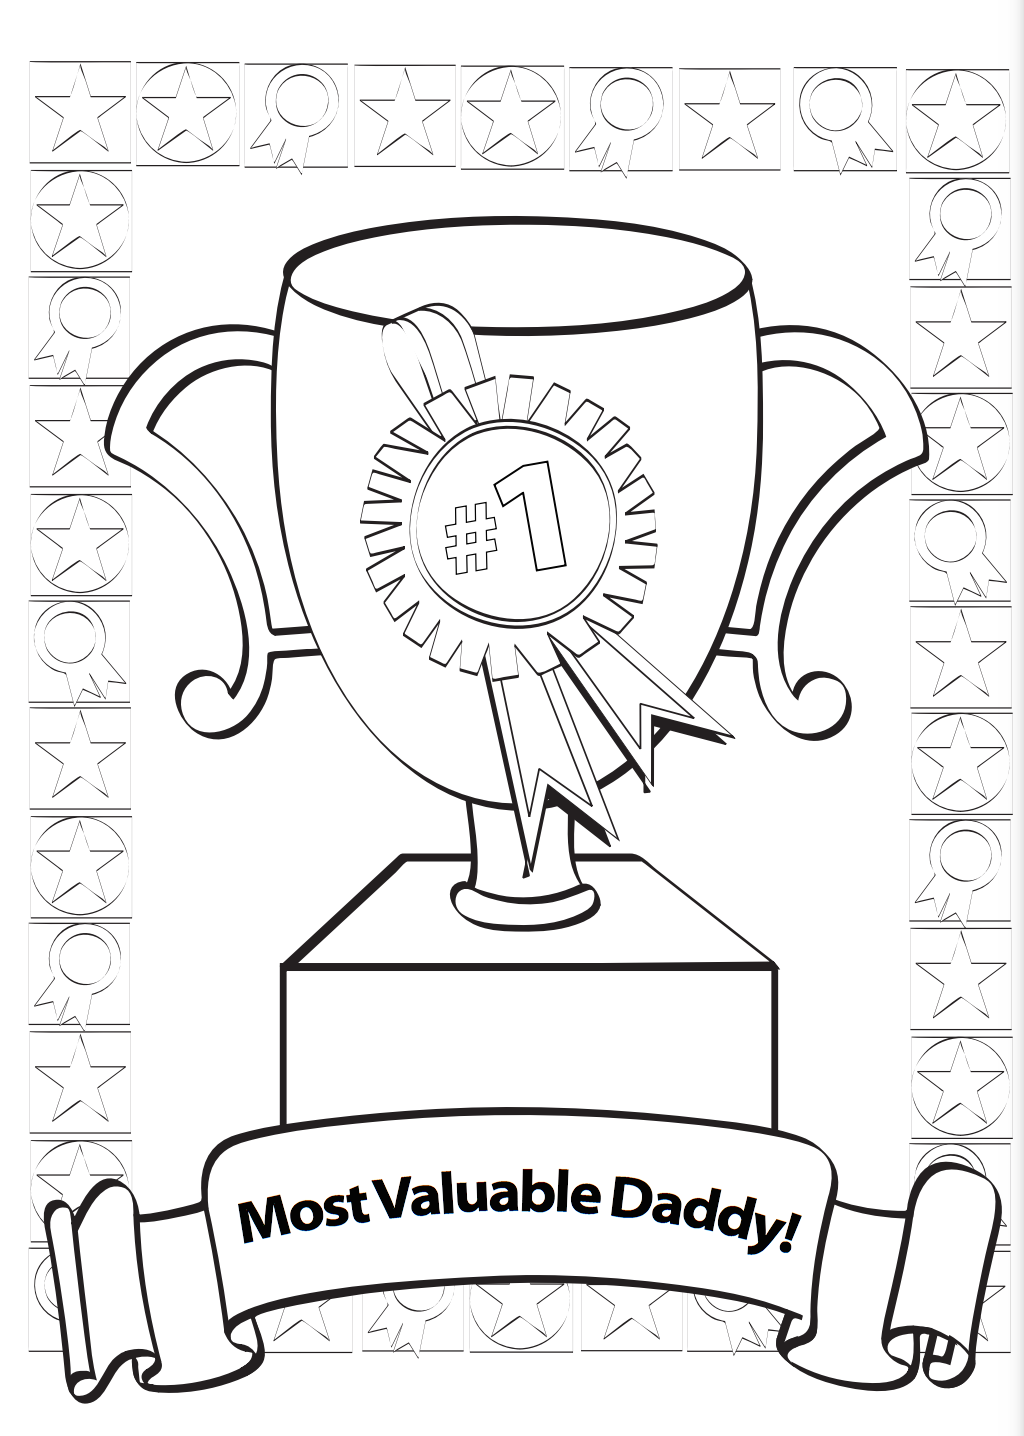 Greatest Dad Father's Day Card Printable